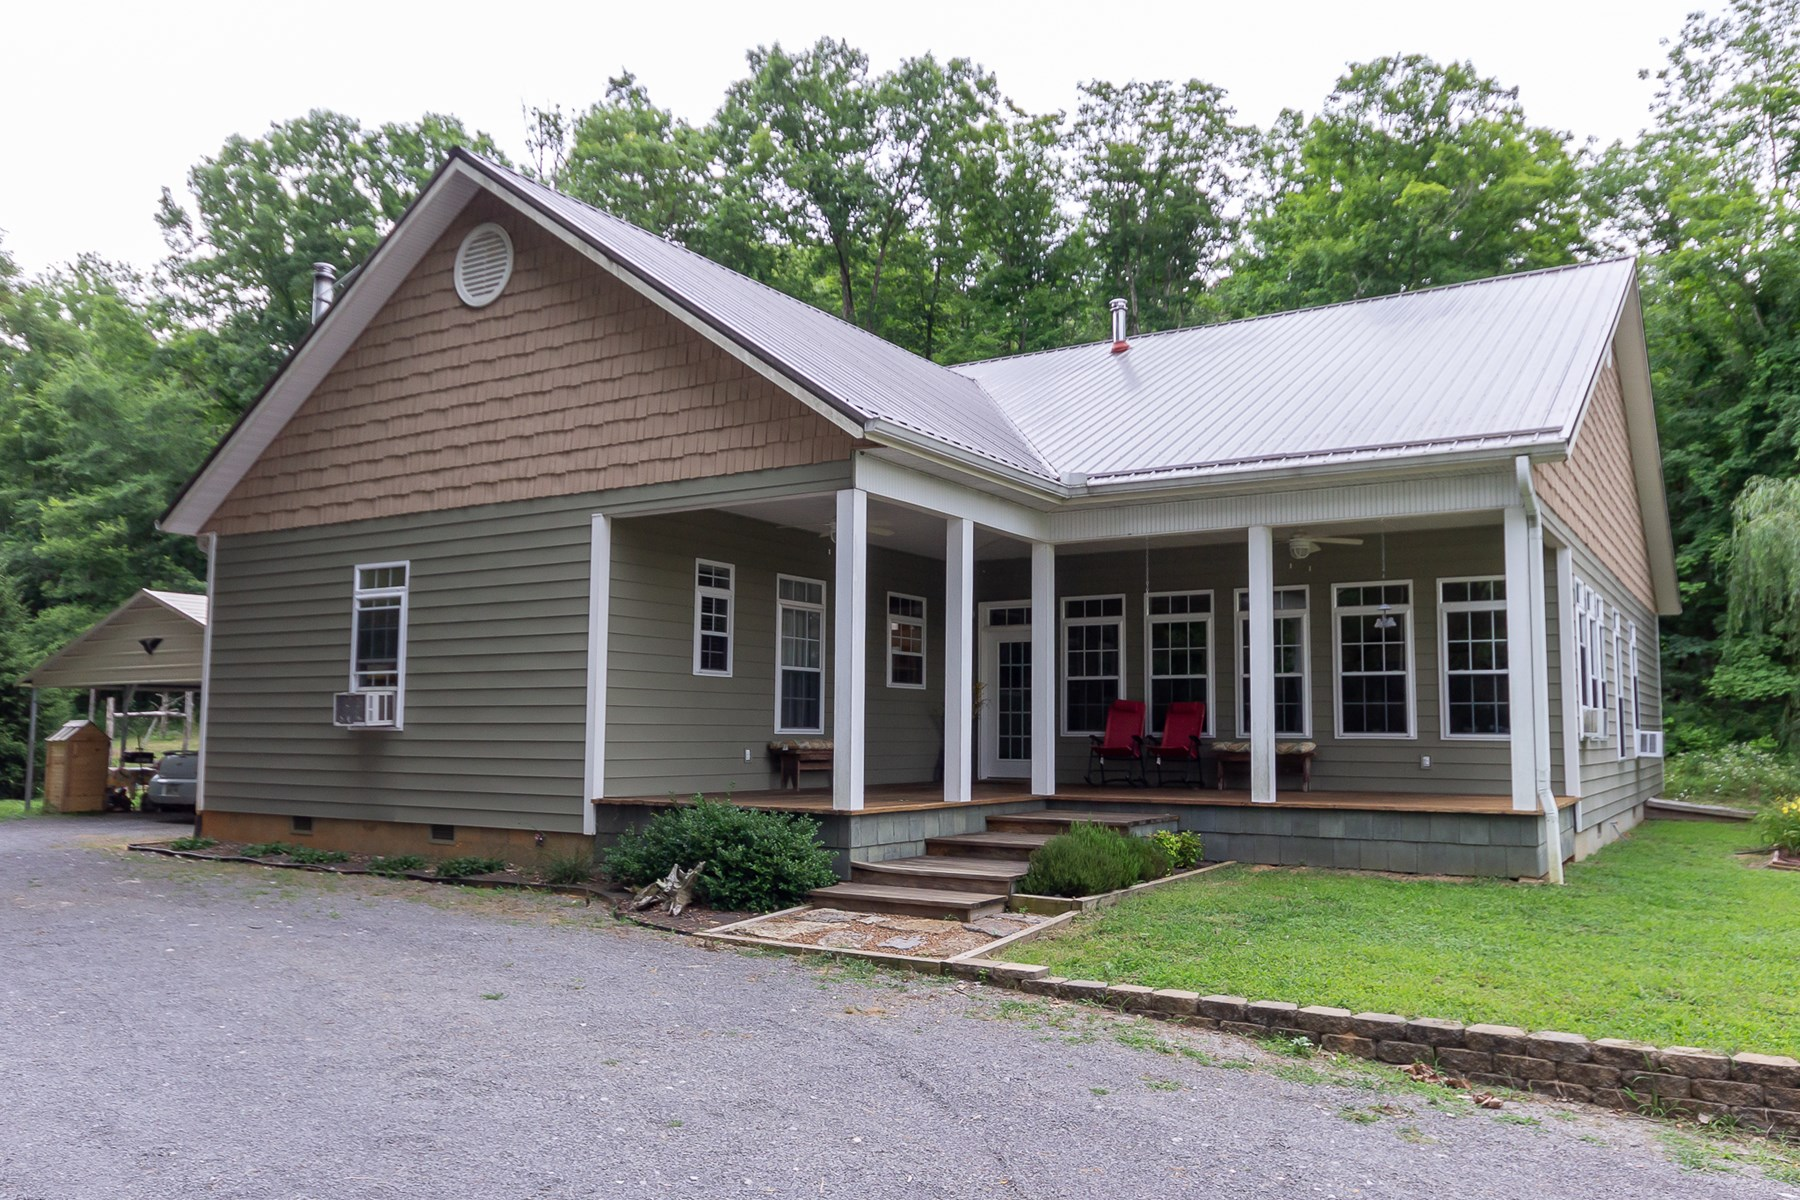 Home and Acreage for Sale Grainger County TN- East TN Farm